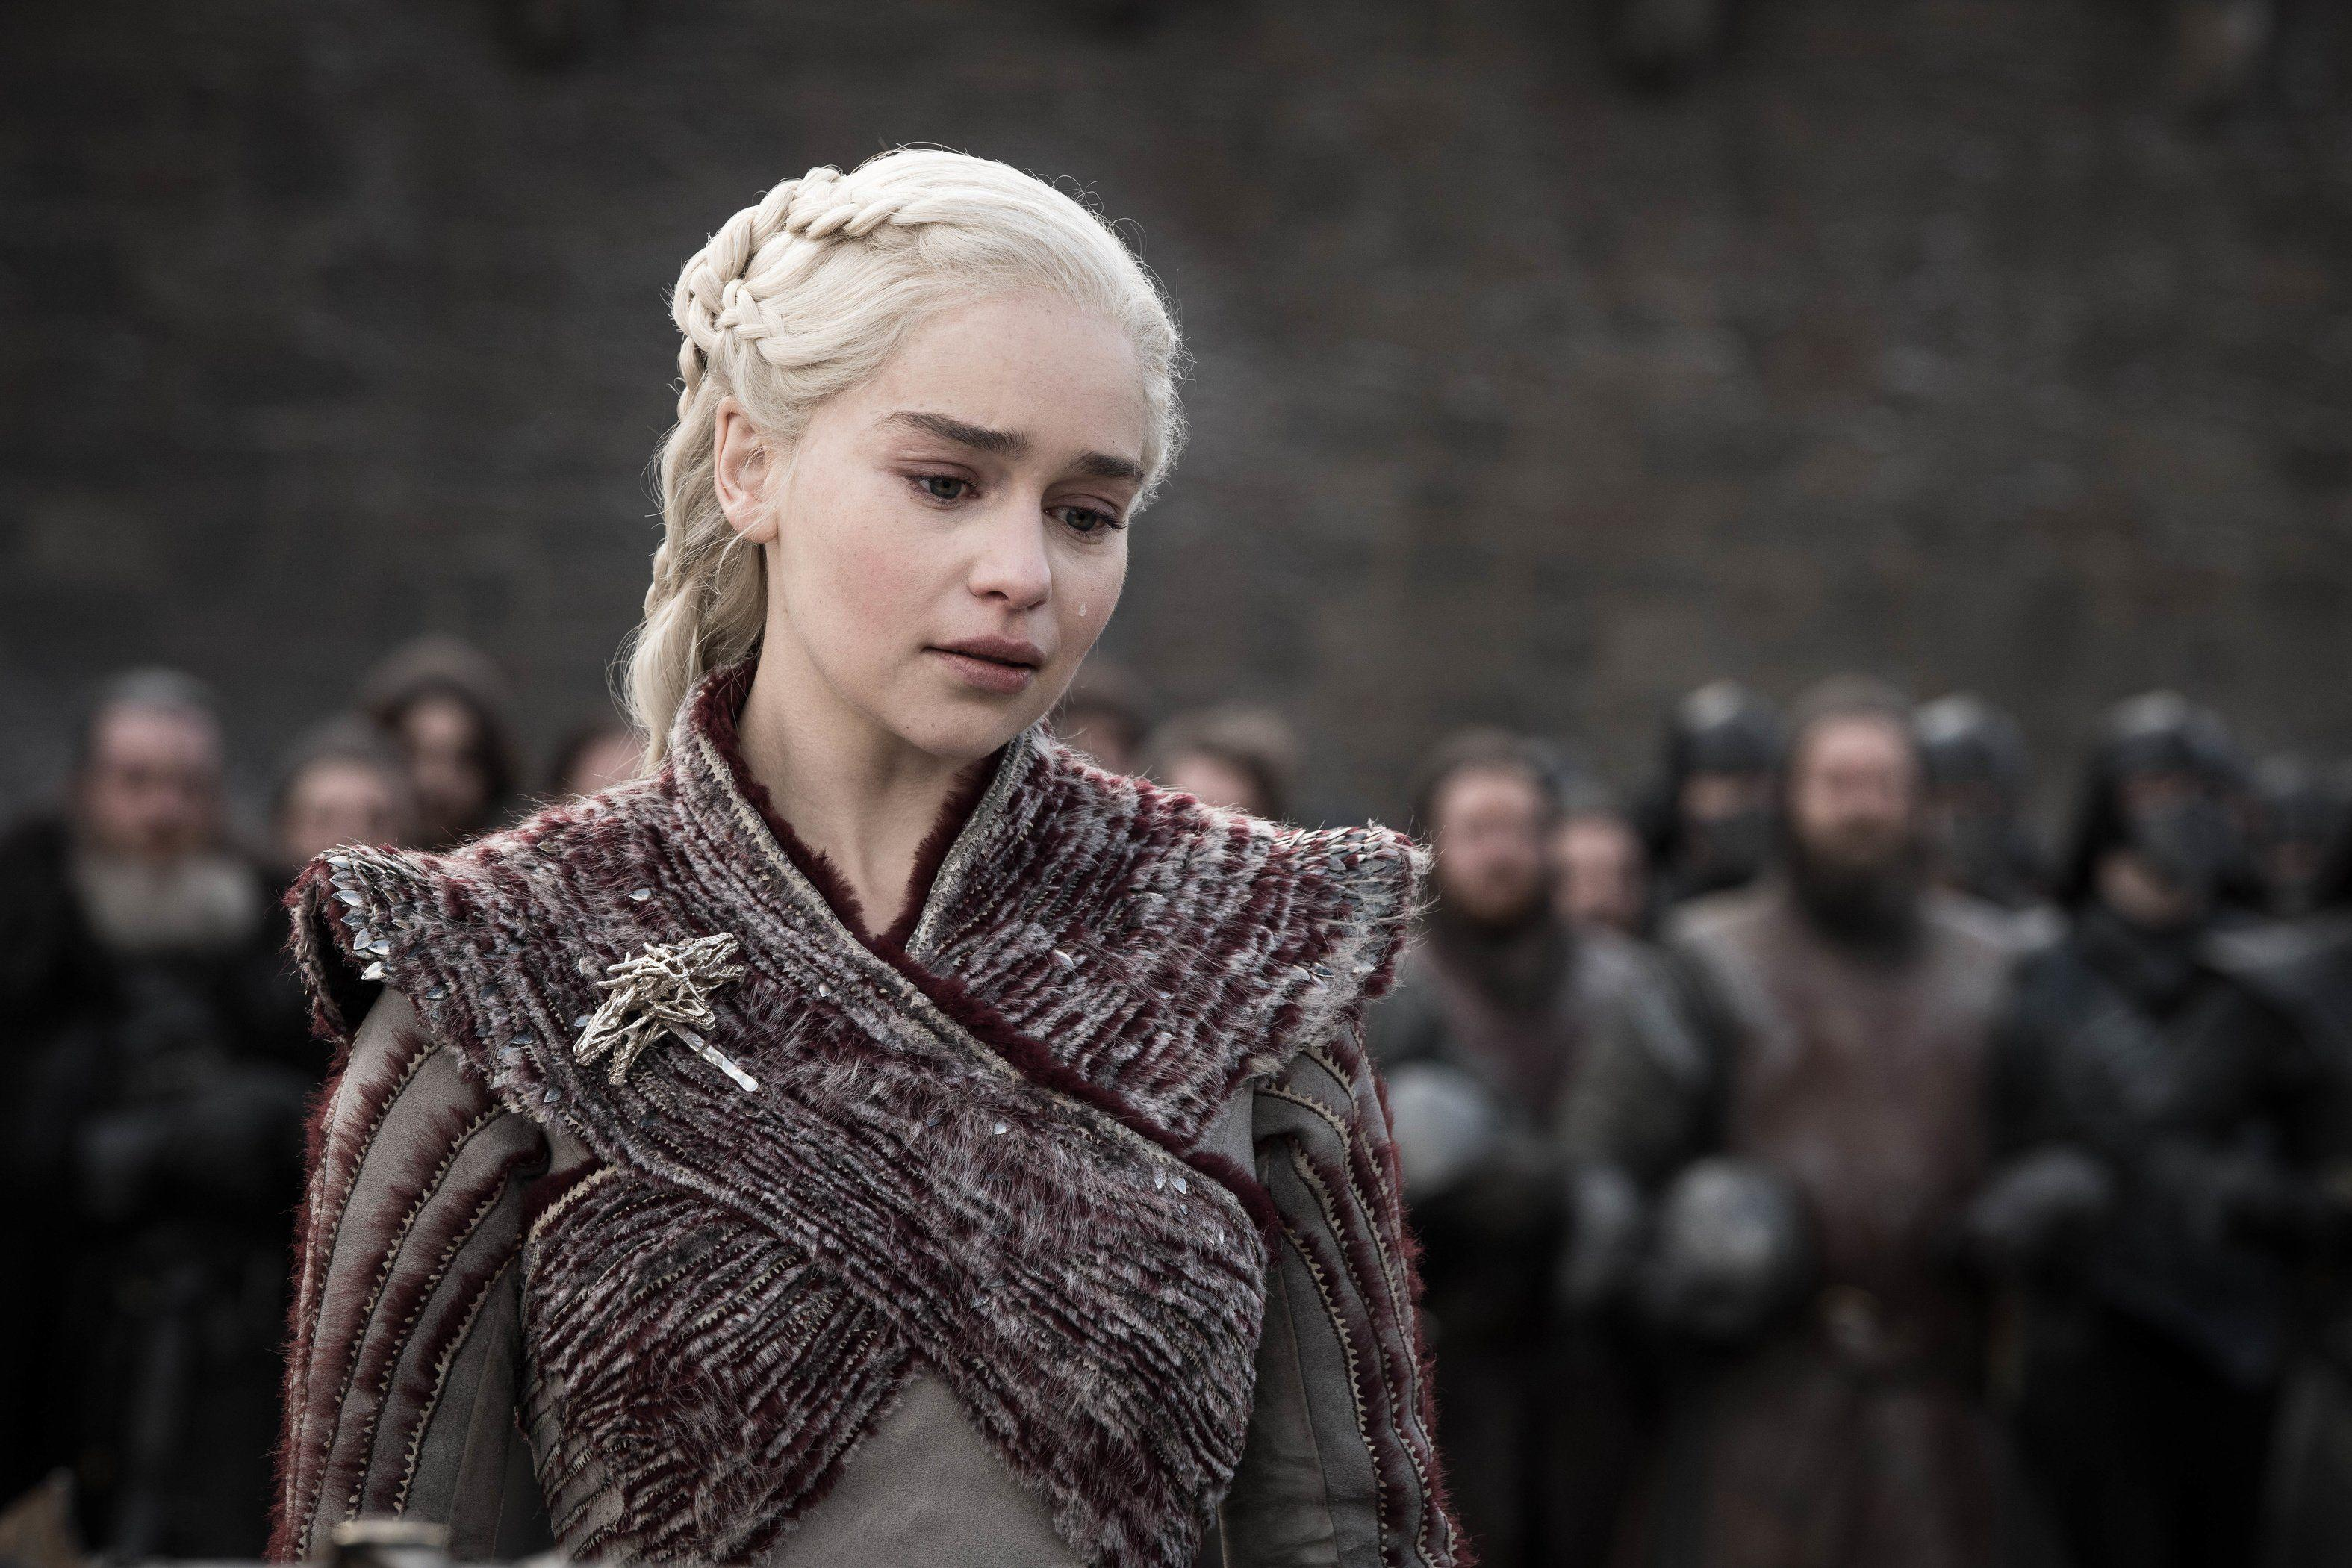 Emilia Clarke was heartbroken by the response to the 'Game Of Thrones' finale